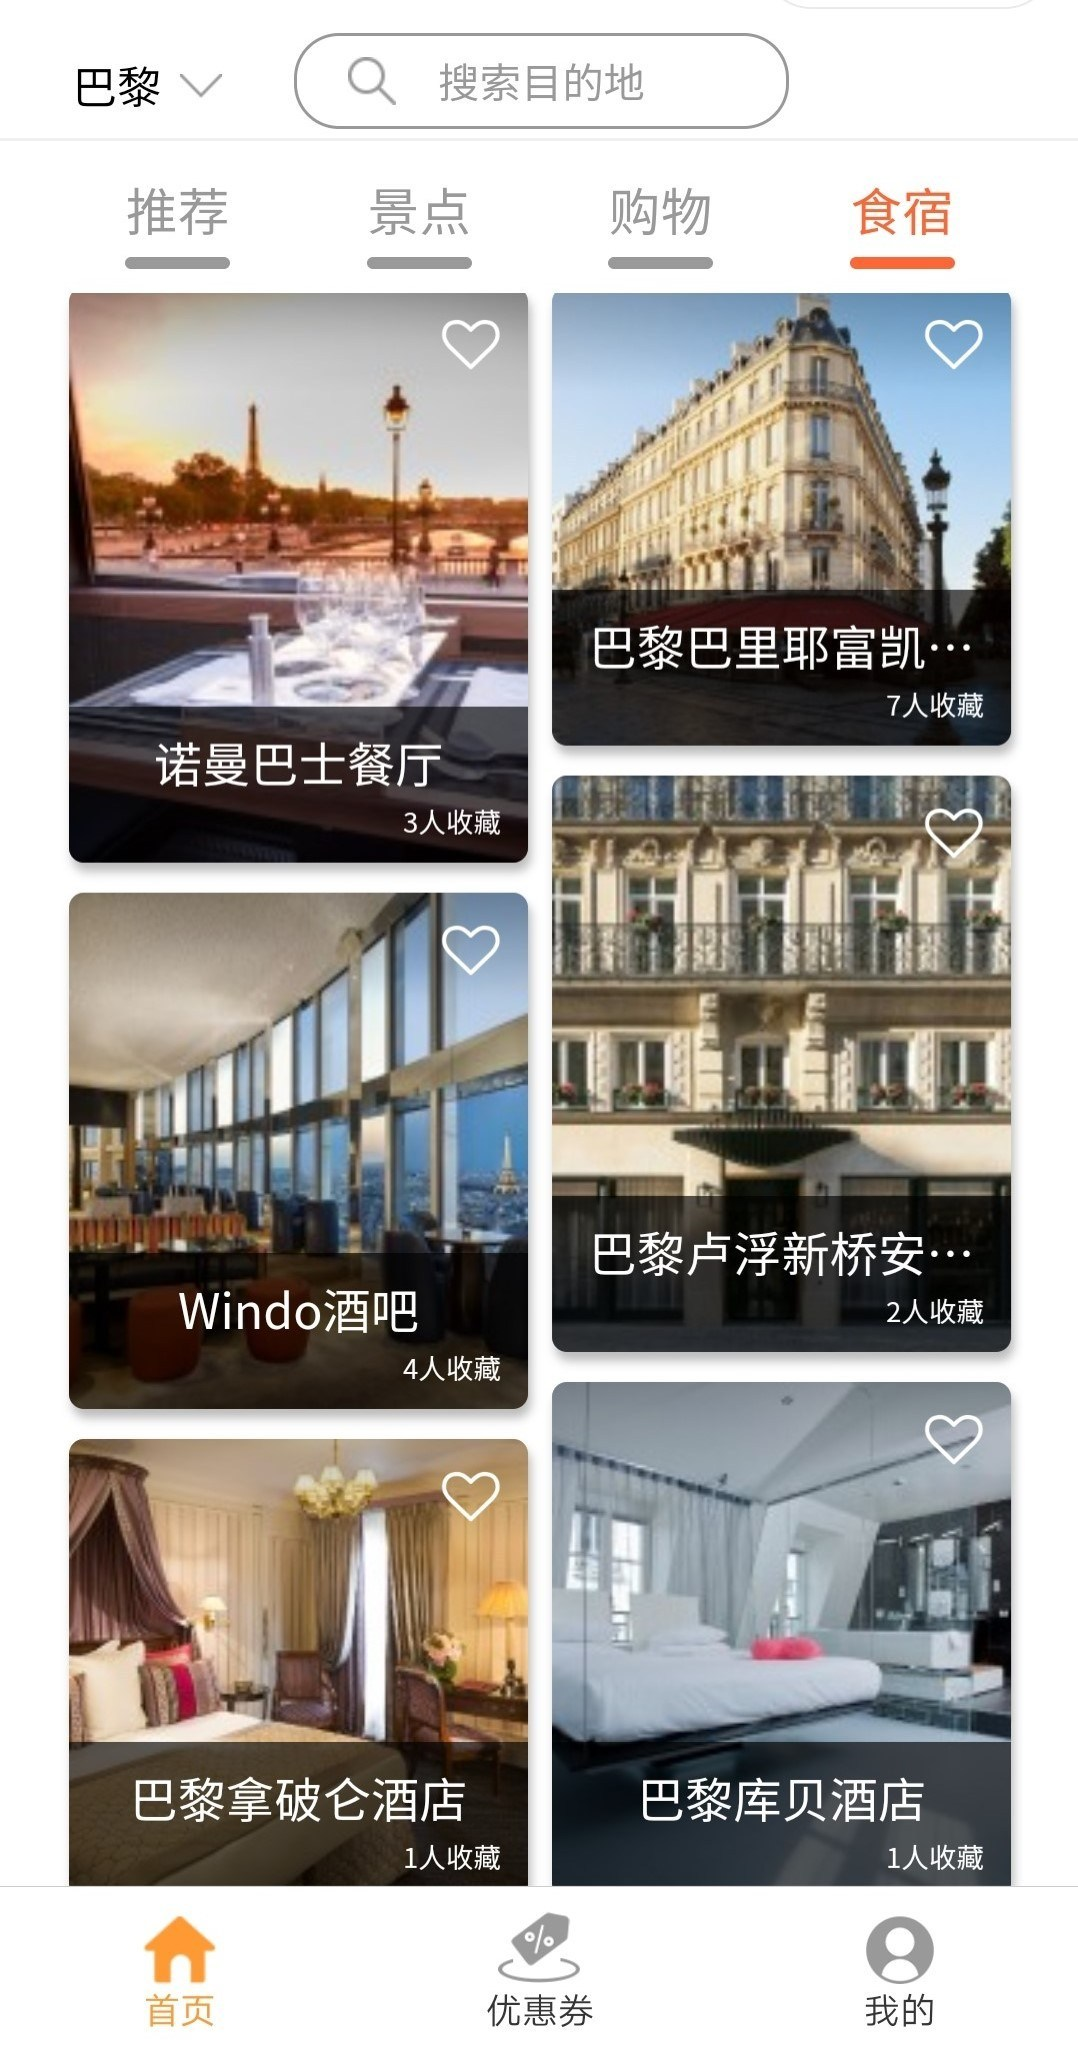 wechat experience hotel Wechat mini-program for Hospitality